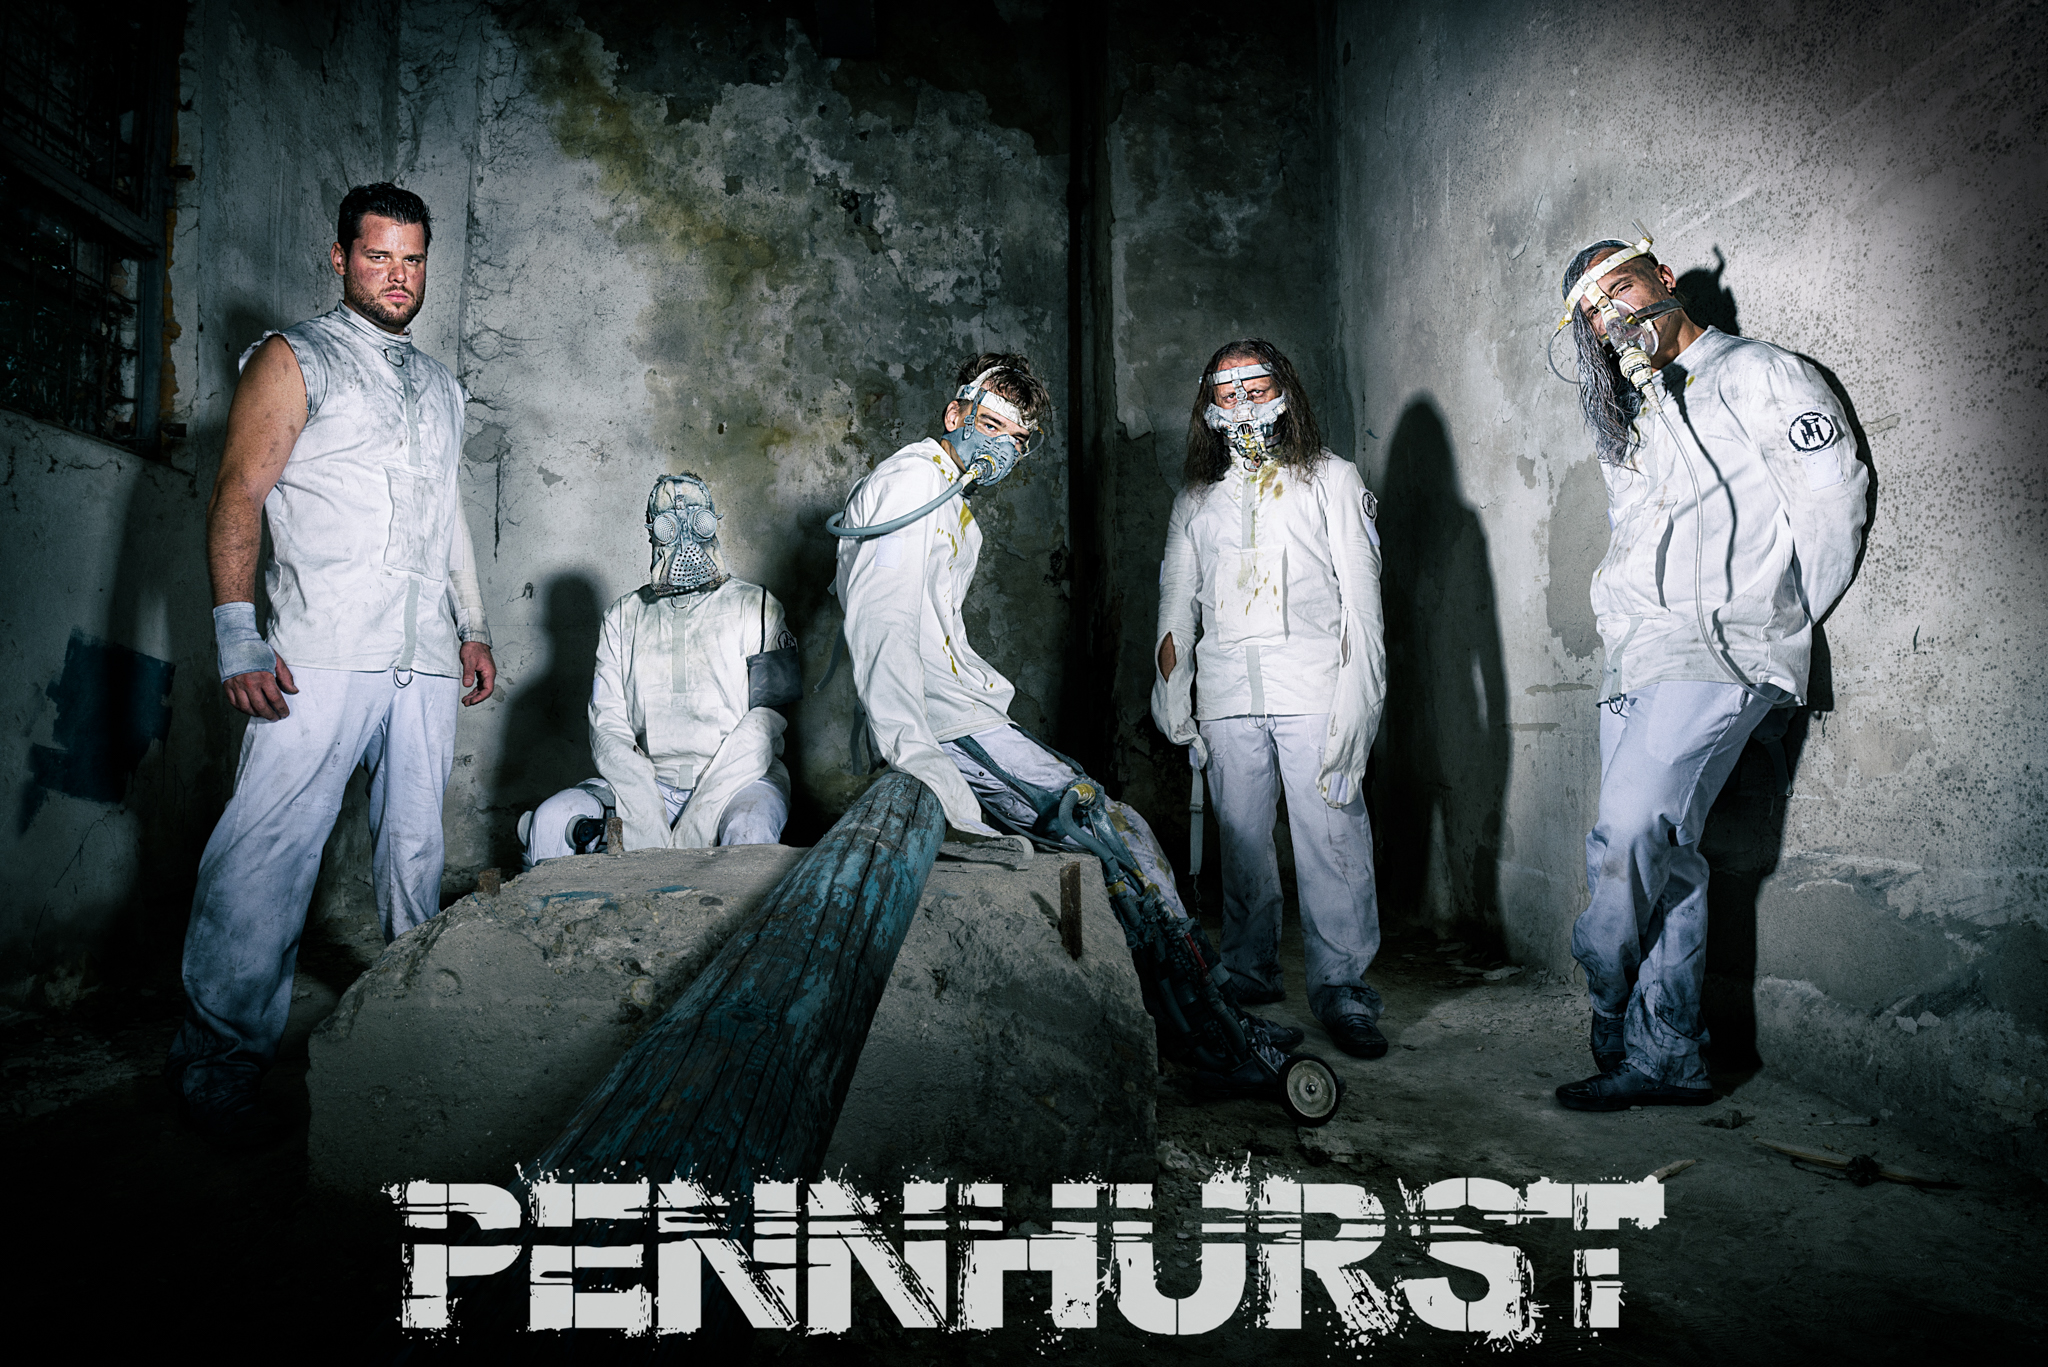 Pennhurst asylum discount coupons